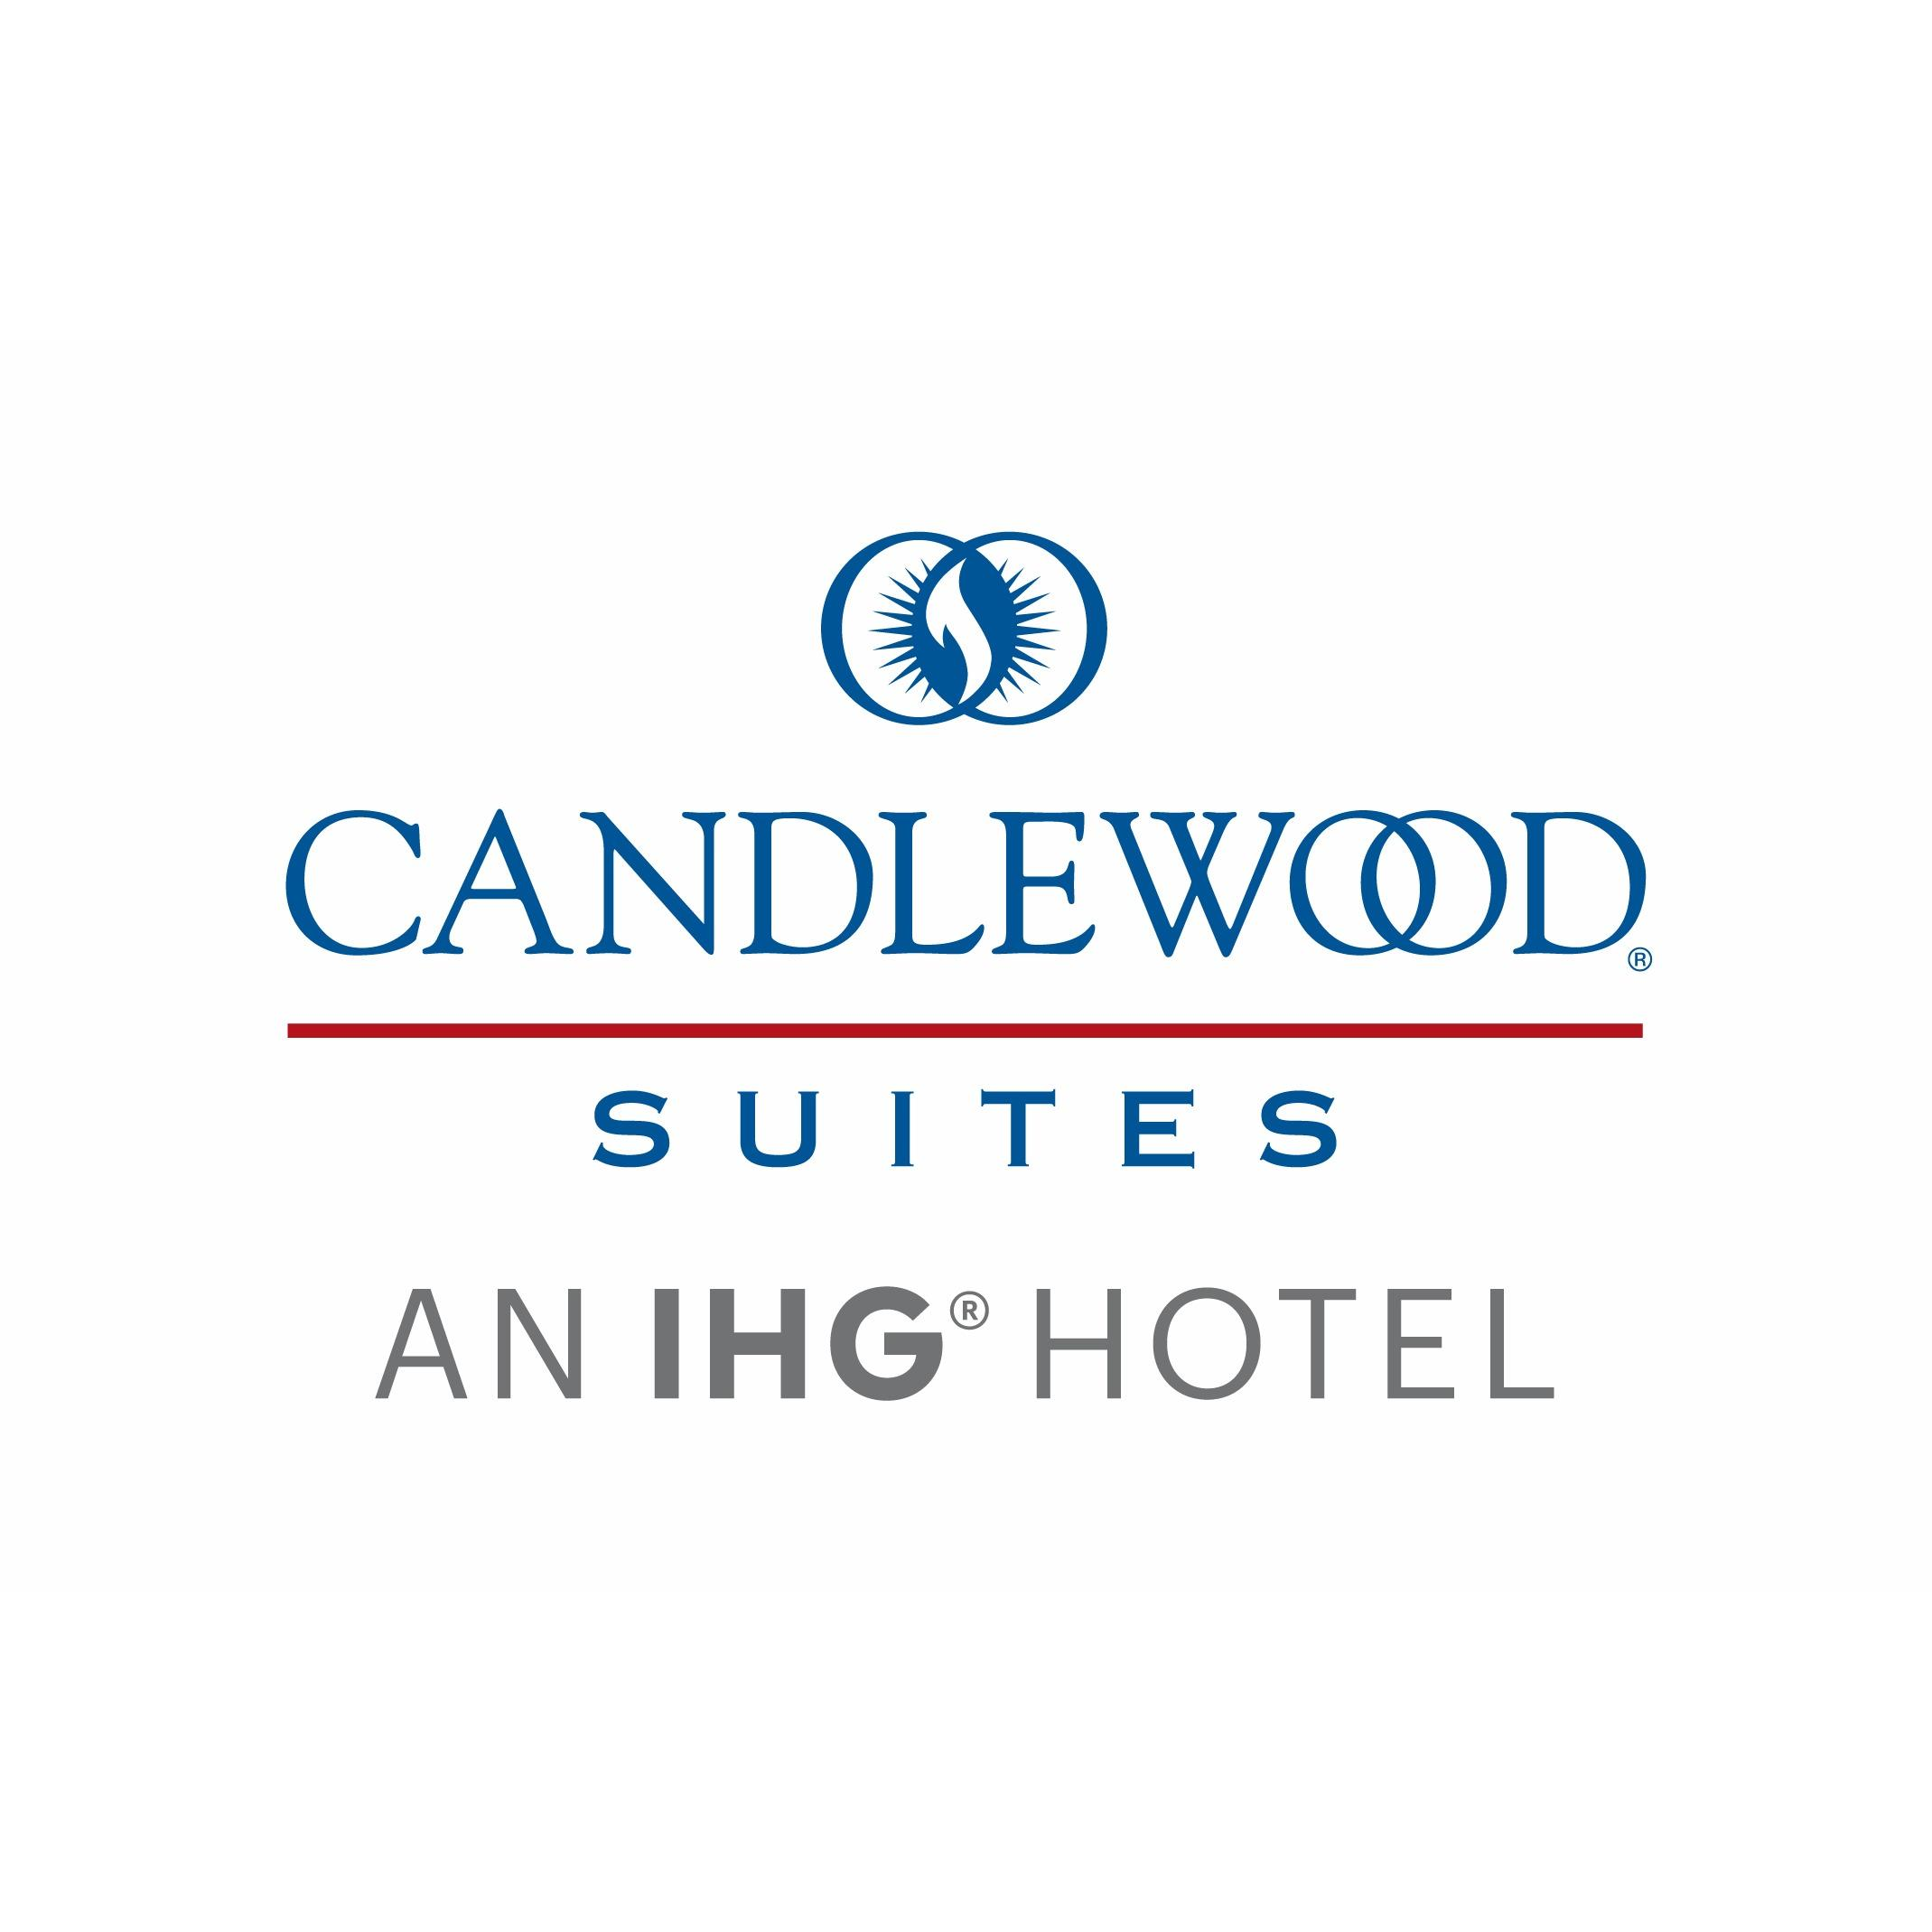 Candlewood Suites West Little Rock - Little Rock, AR - Hotels & Motels